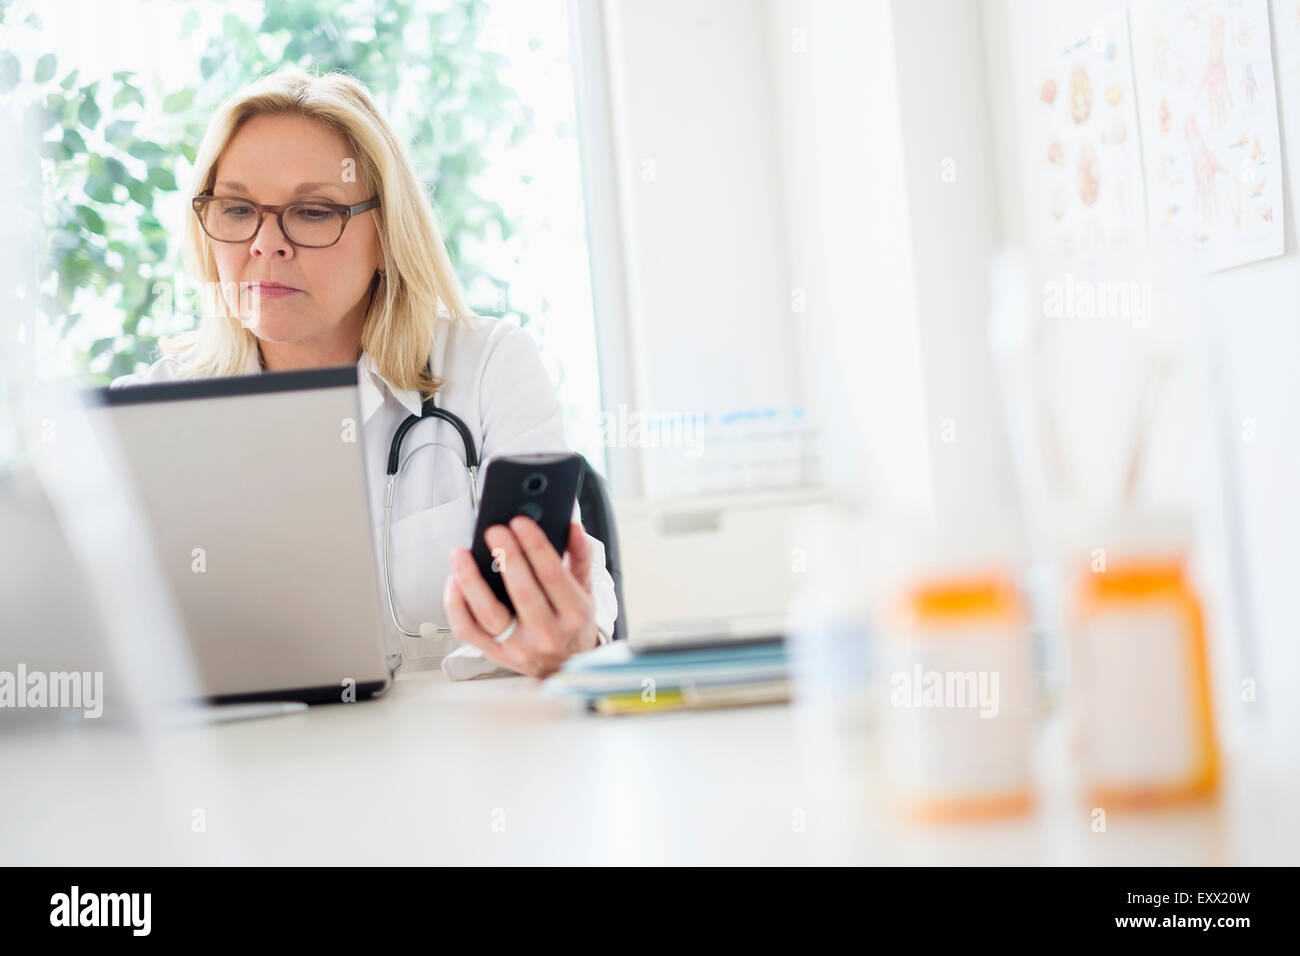 Doctor working with laptop in her office - Stock Image